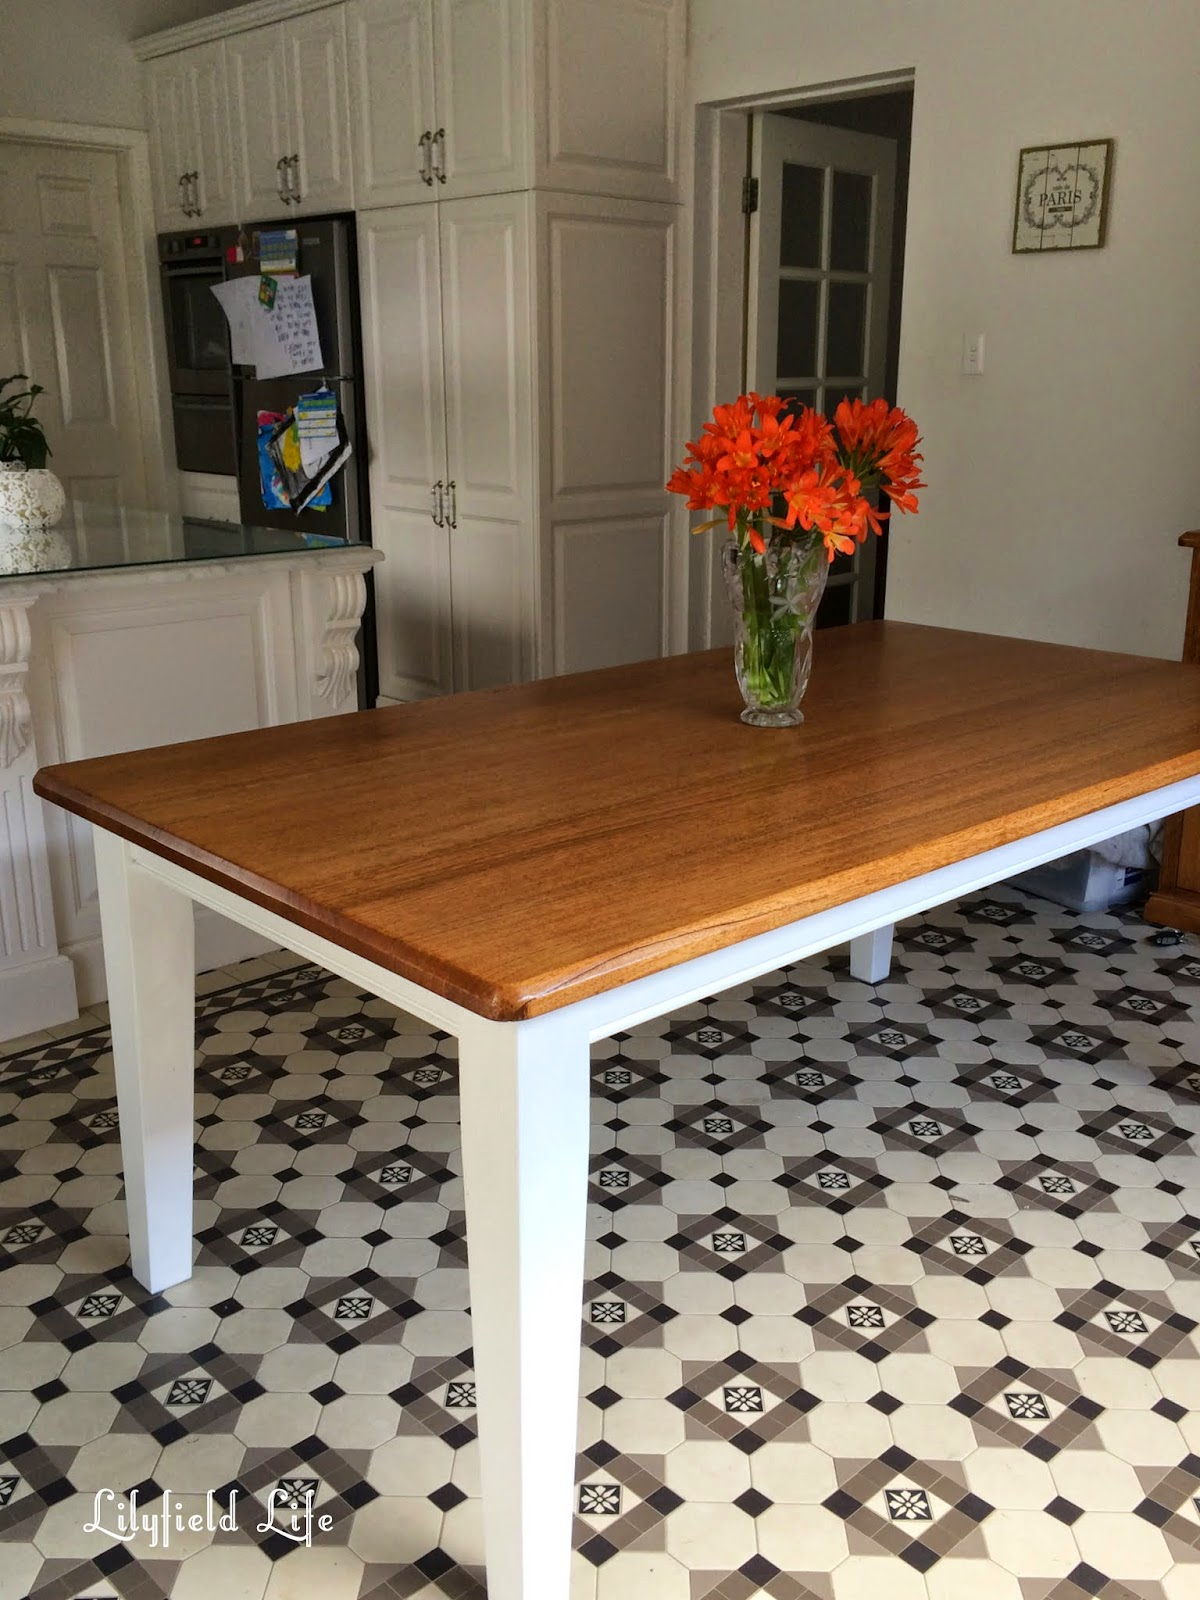 Lilyfield Life Dining Table French Kitchen And A Tiled Floor